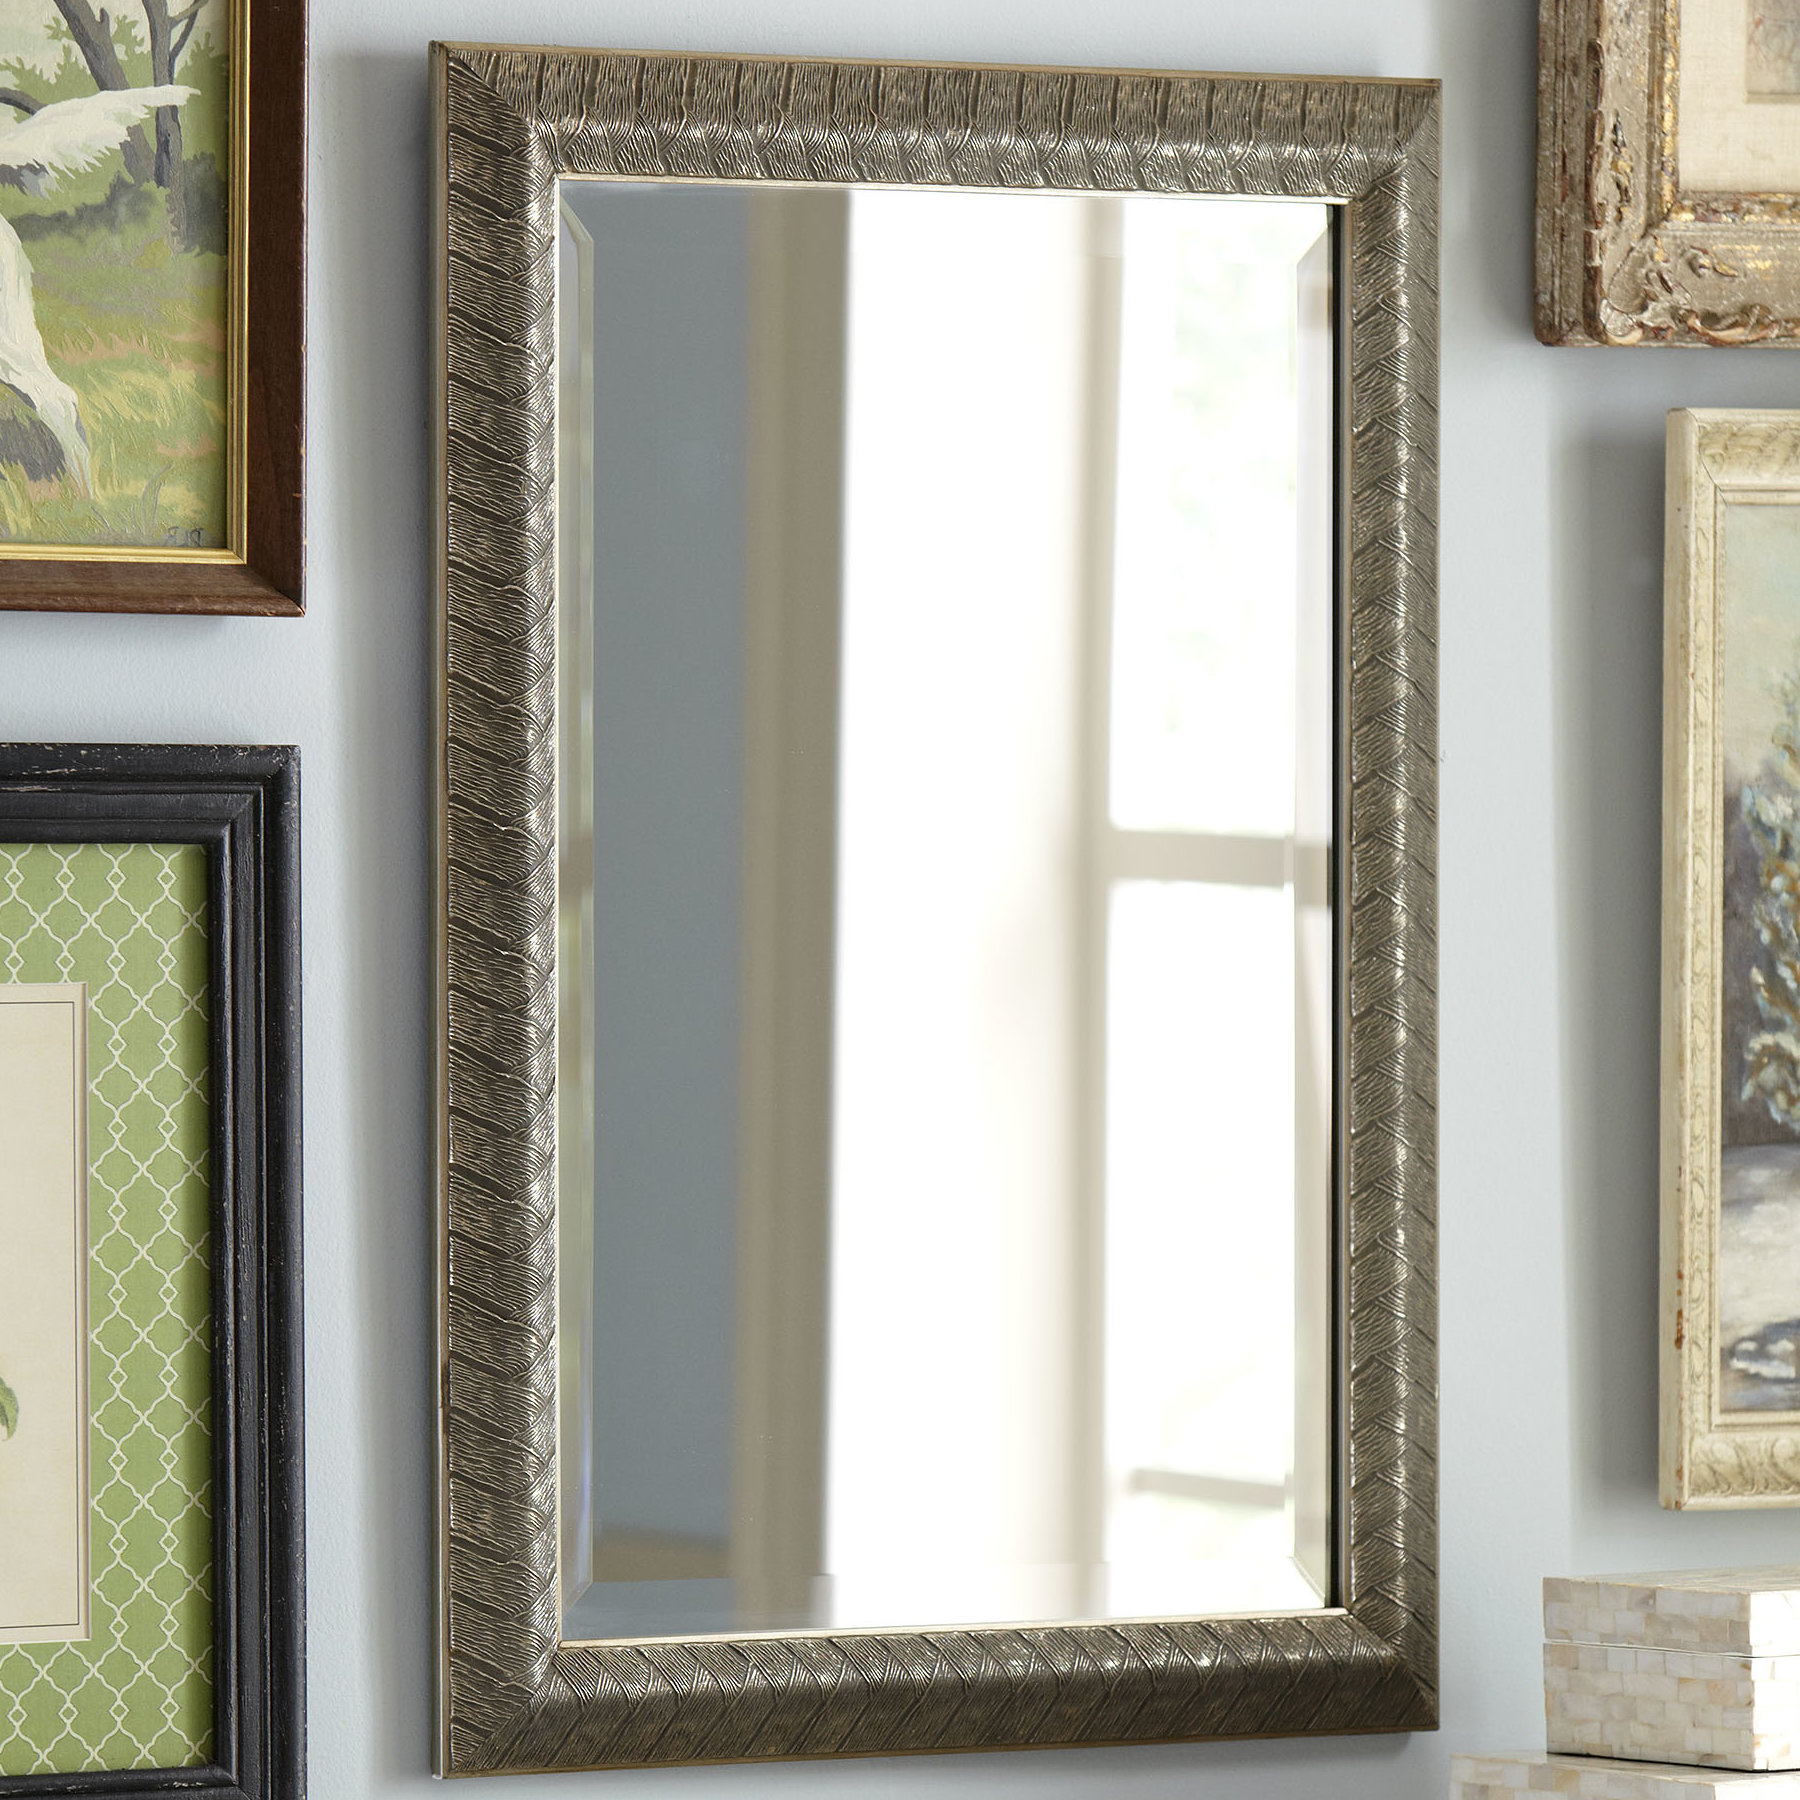 Trendy Epinal Shabby Elegance Wall Mirrors With Filippa Accent Mirror (View 14 of 20)